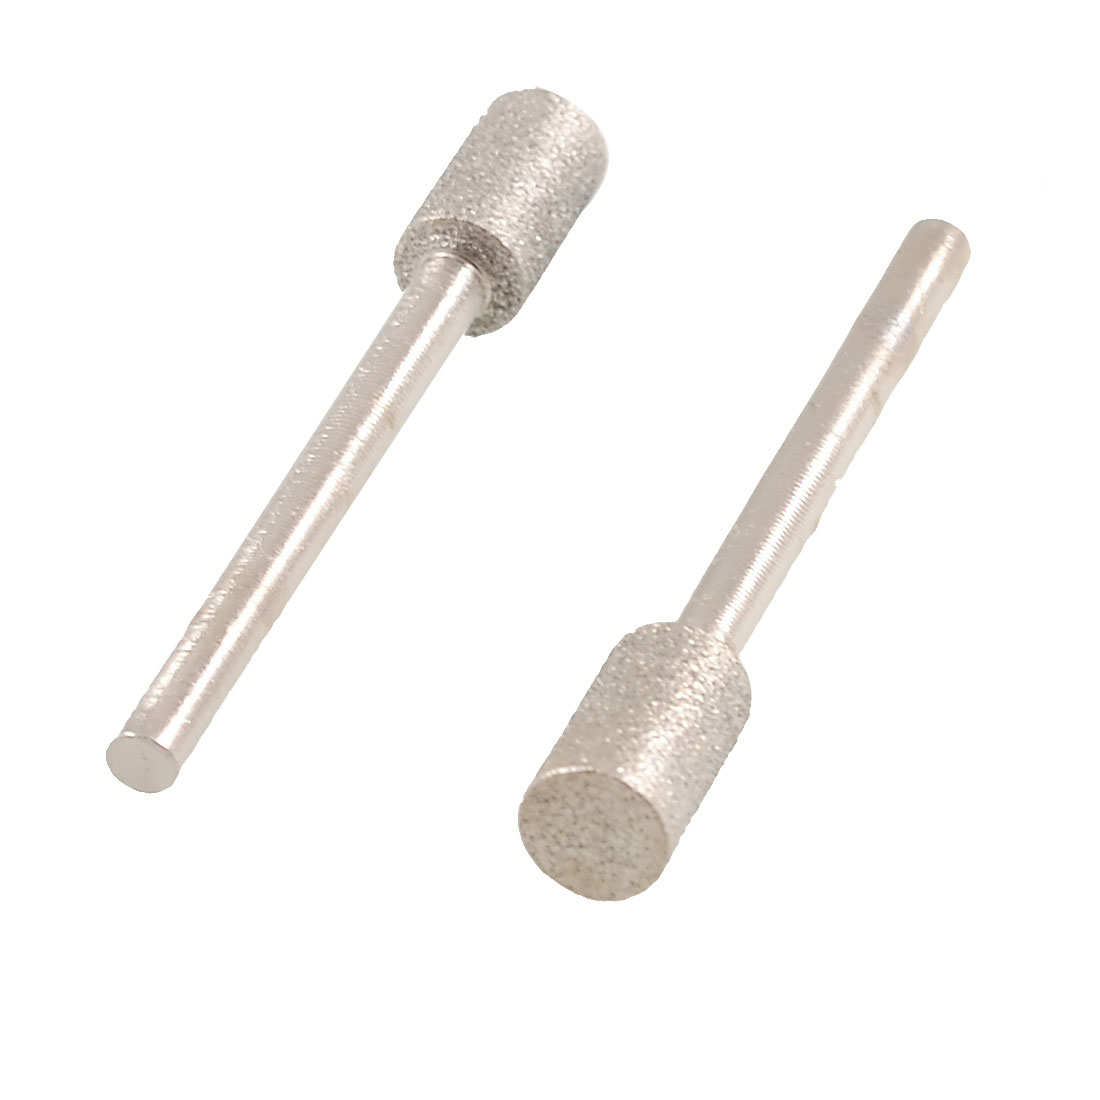 2 Pcs 3mm Shank 6mm Cylindrical Head Diamond Mounted Points